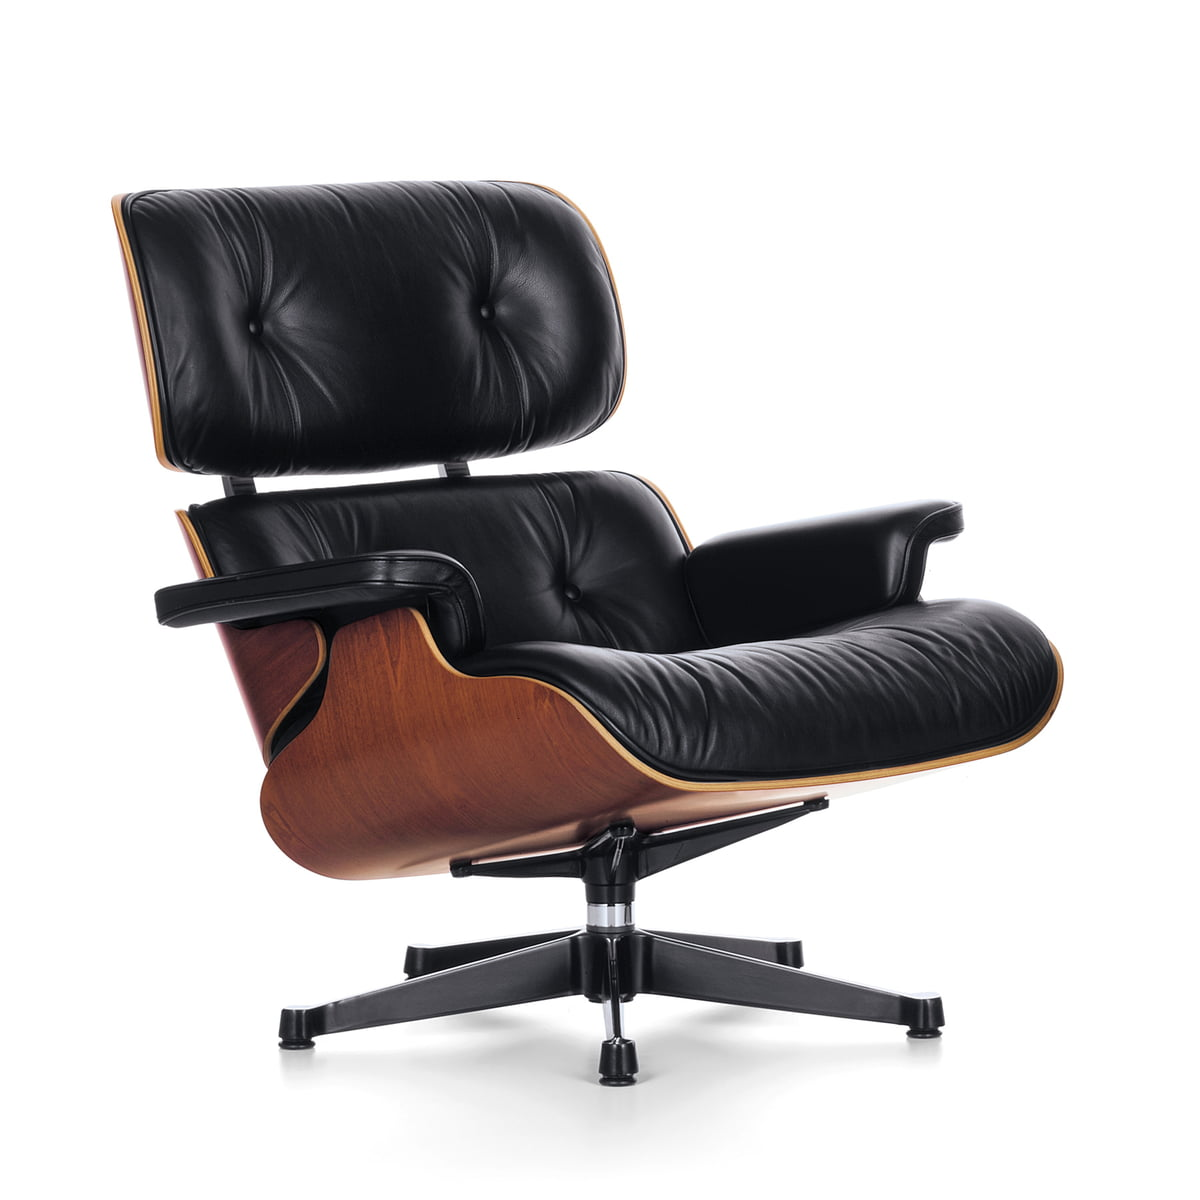 Modern classic lounge chair - Vitra Lounge Chair Cherry Wood Classic Size